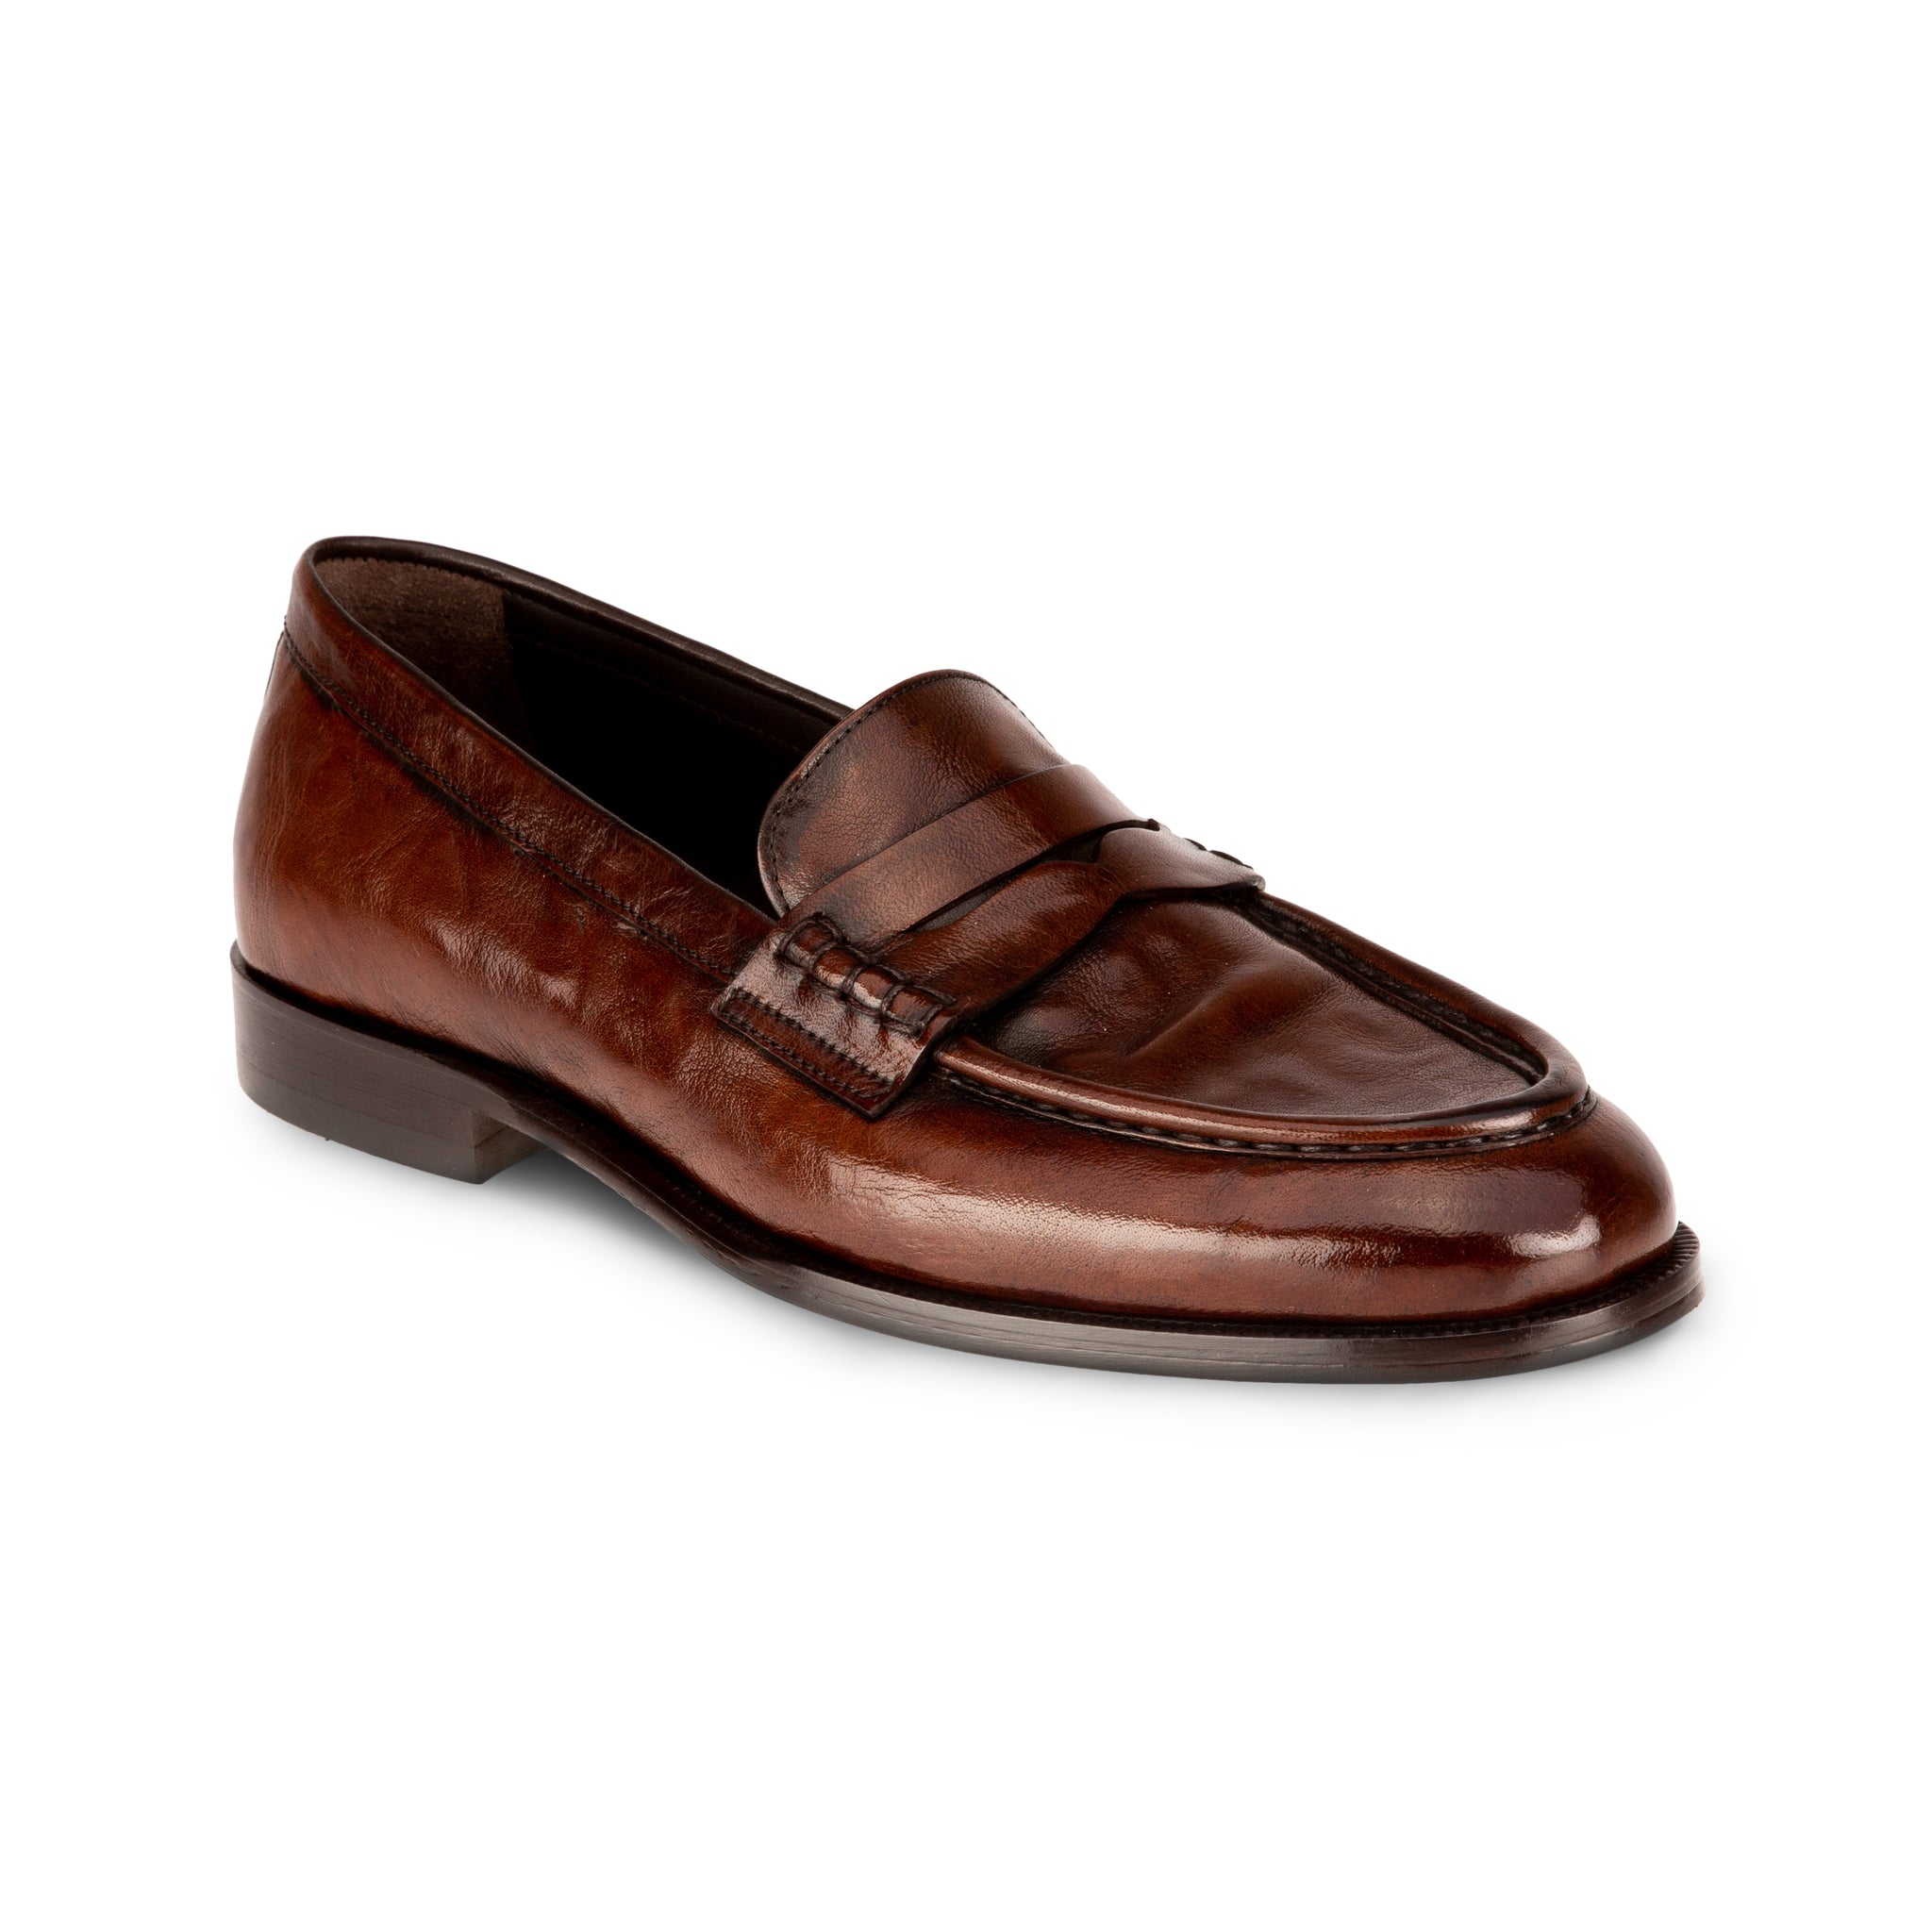 ENRICO MARINELLY VINTAGE LOAFER